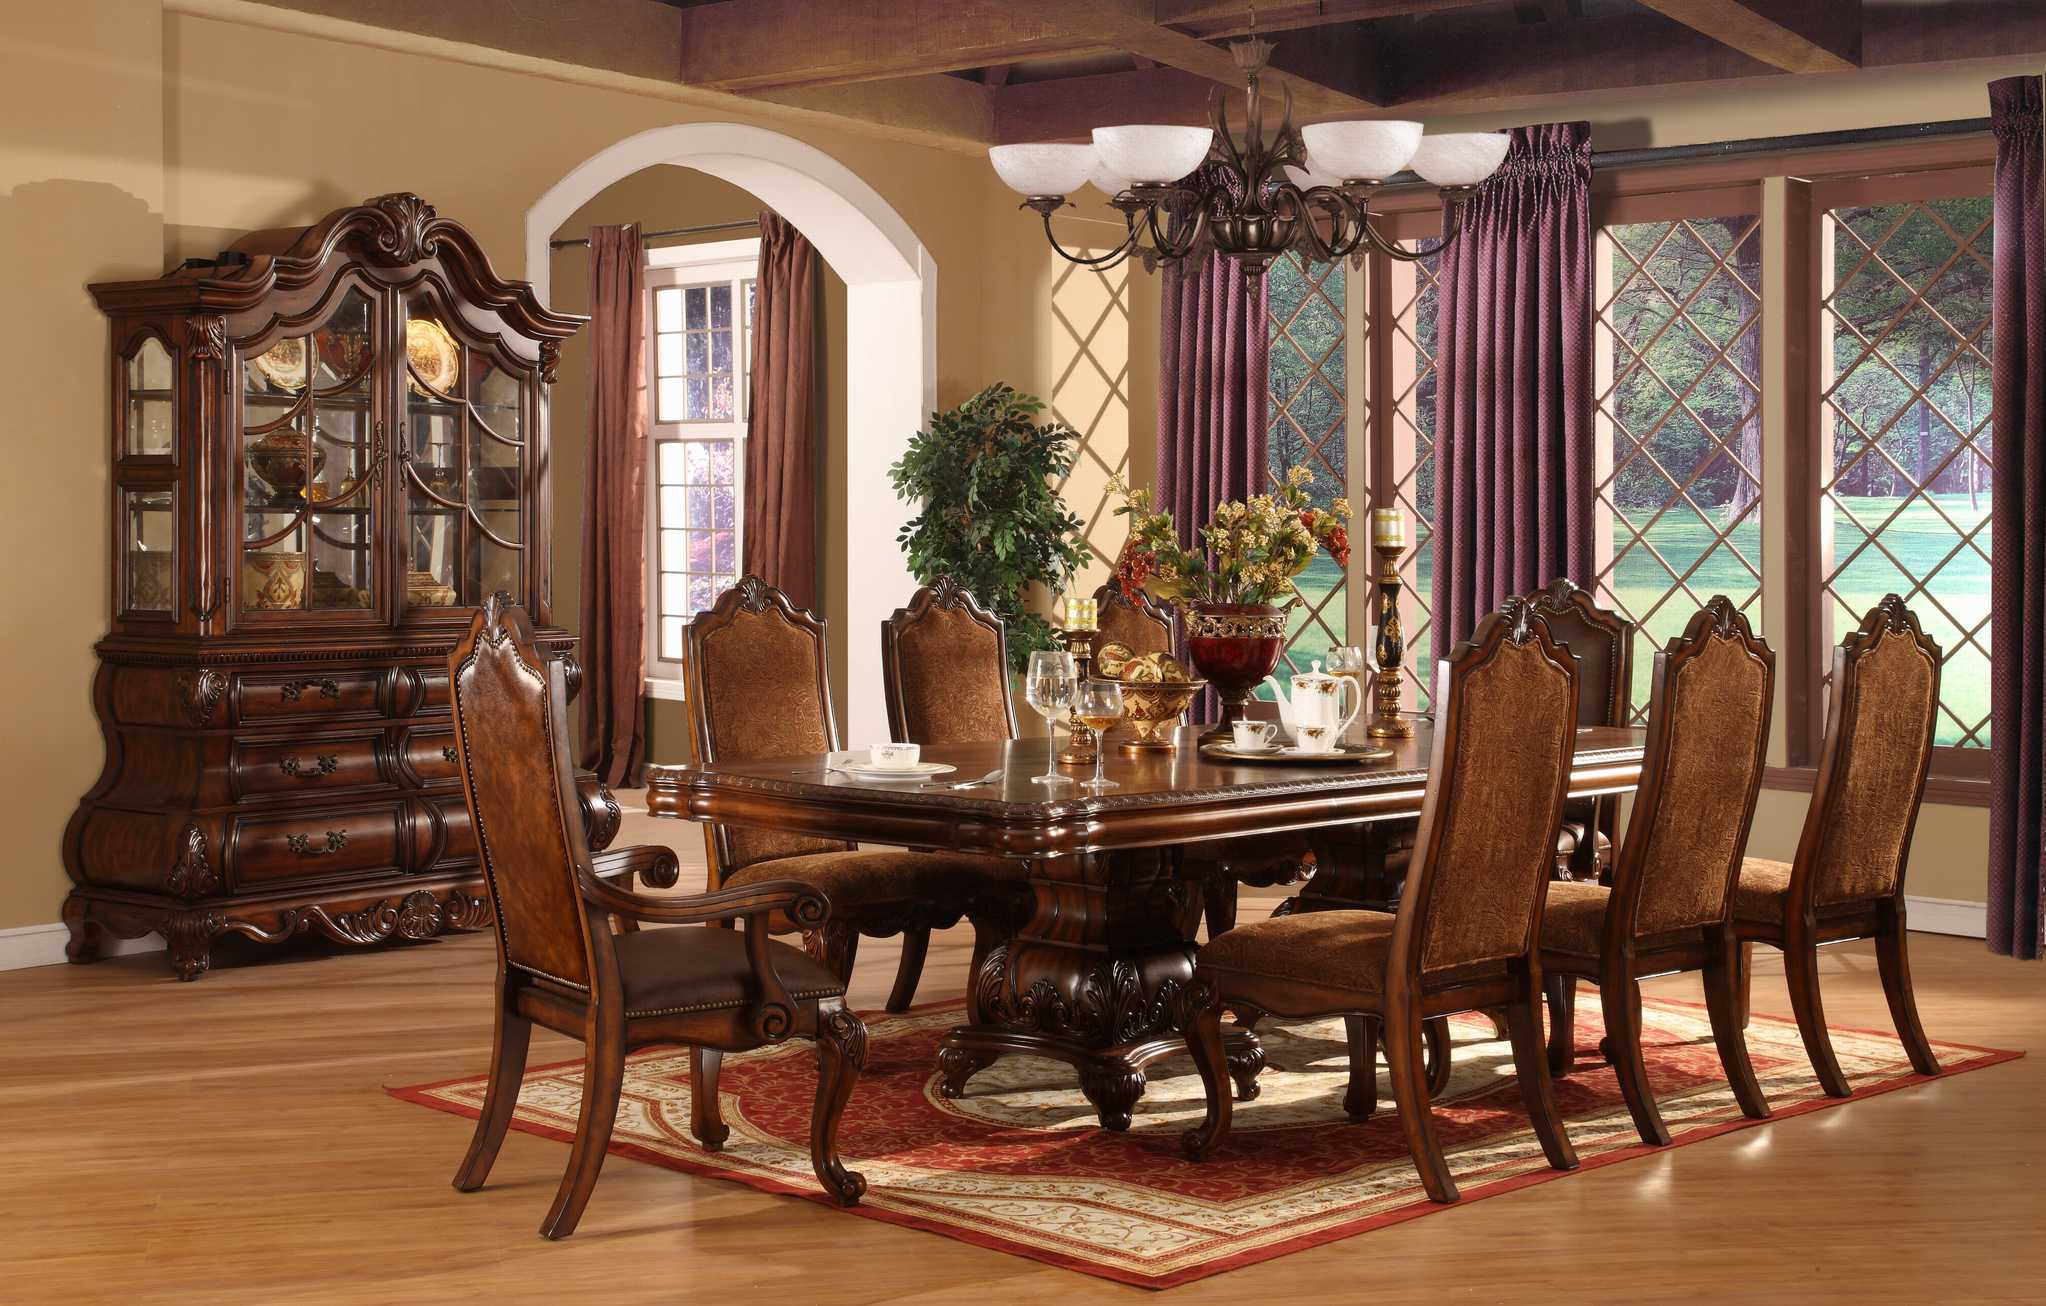 Amazing formal-dining-room-sets-with-buffet and ceiling light for dining room with modern formal dining room sets